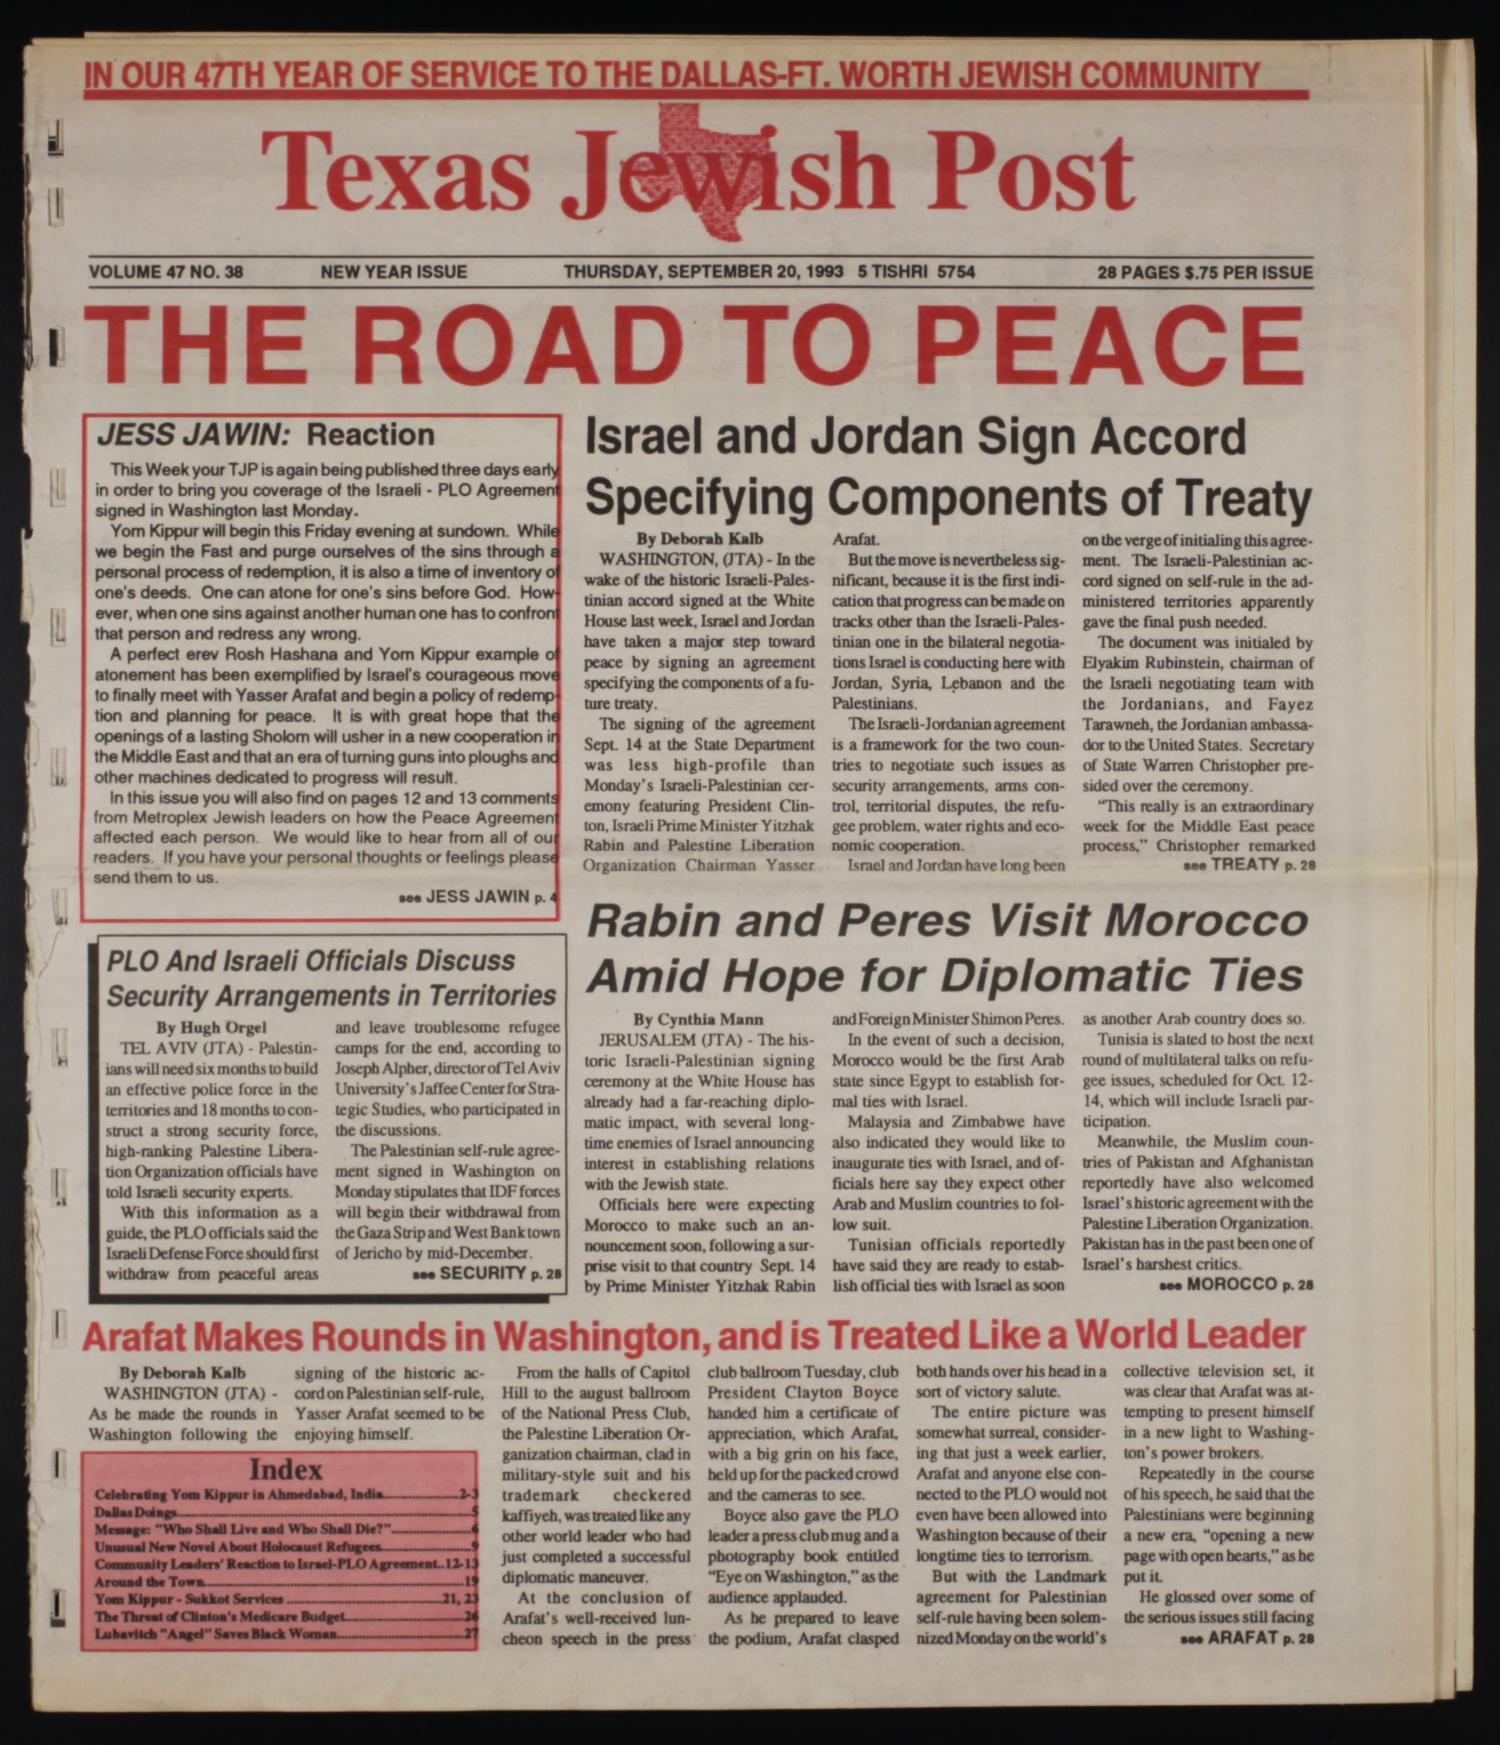 an introduction to the history of israel plo peace treaty The camp david accords was a peace treaty signed september history: the 1948 arab-israeli war erupted in 1948 when israel proclaimed its (plo), professing.